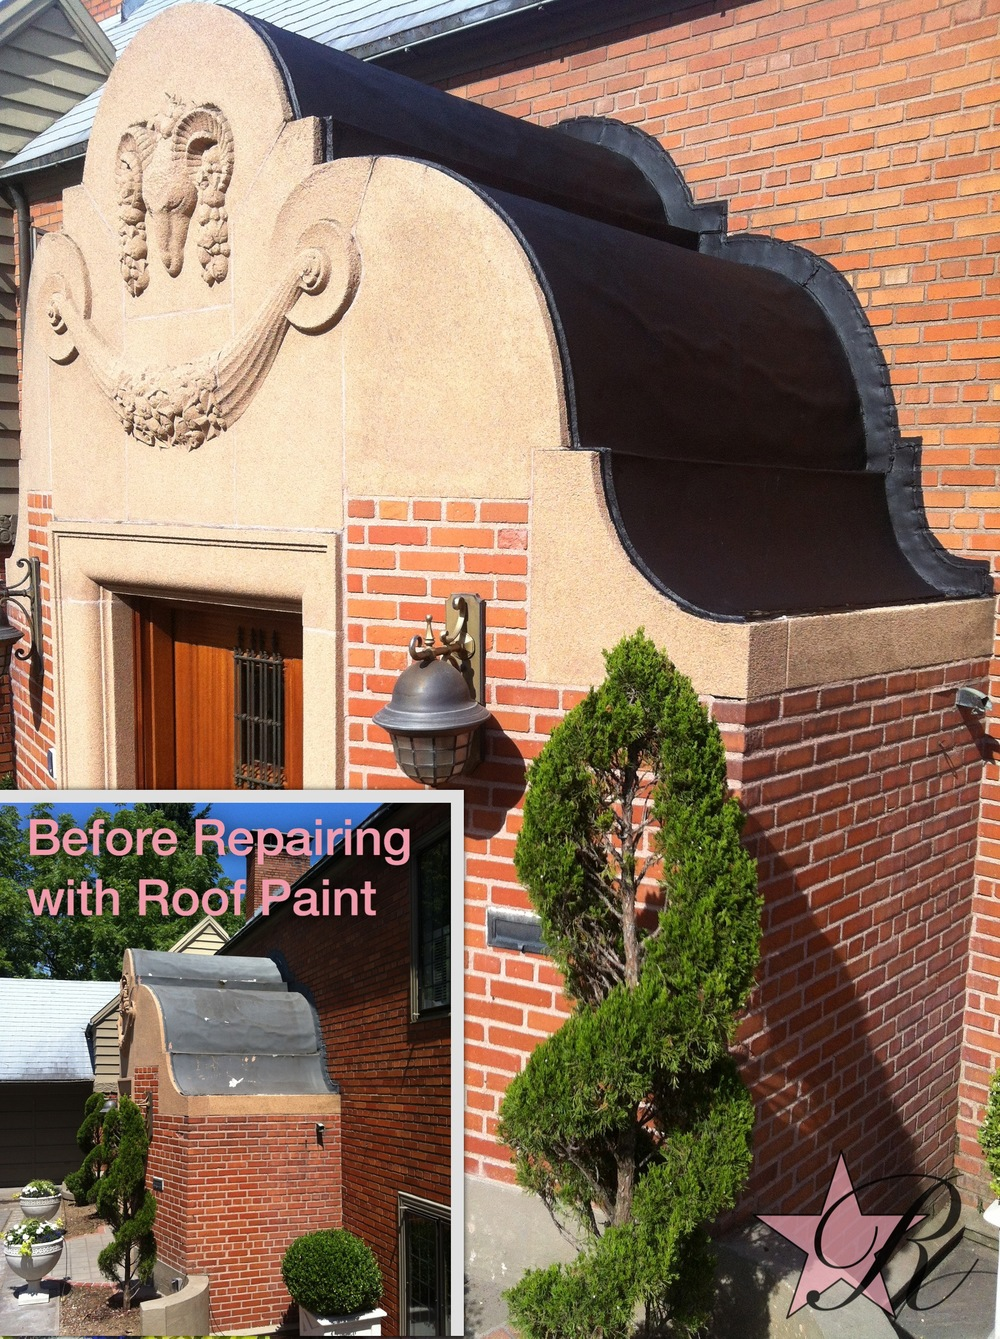 Sherwin Williams manufactures paint for many different applications, including roofs.